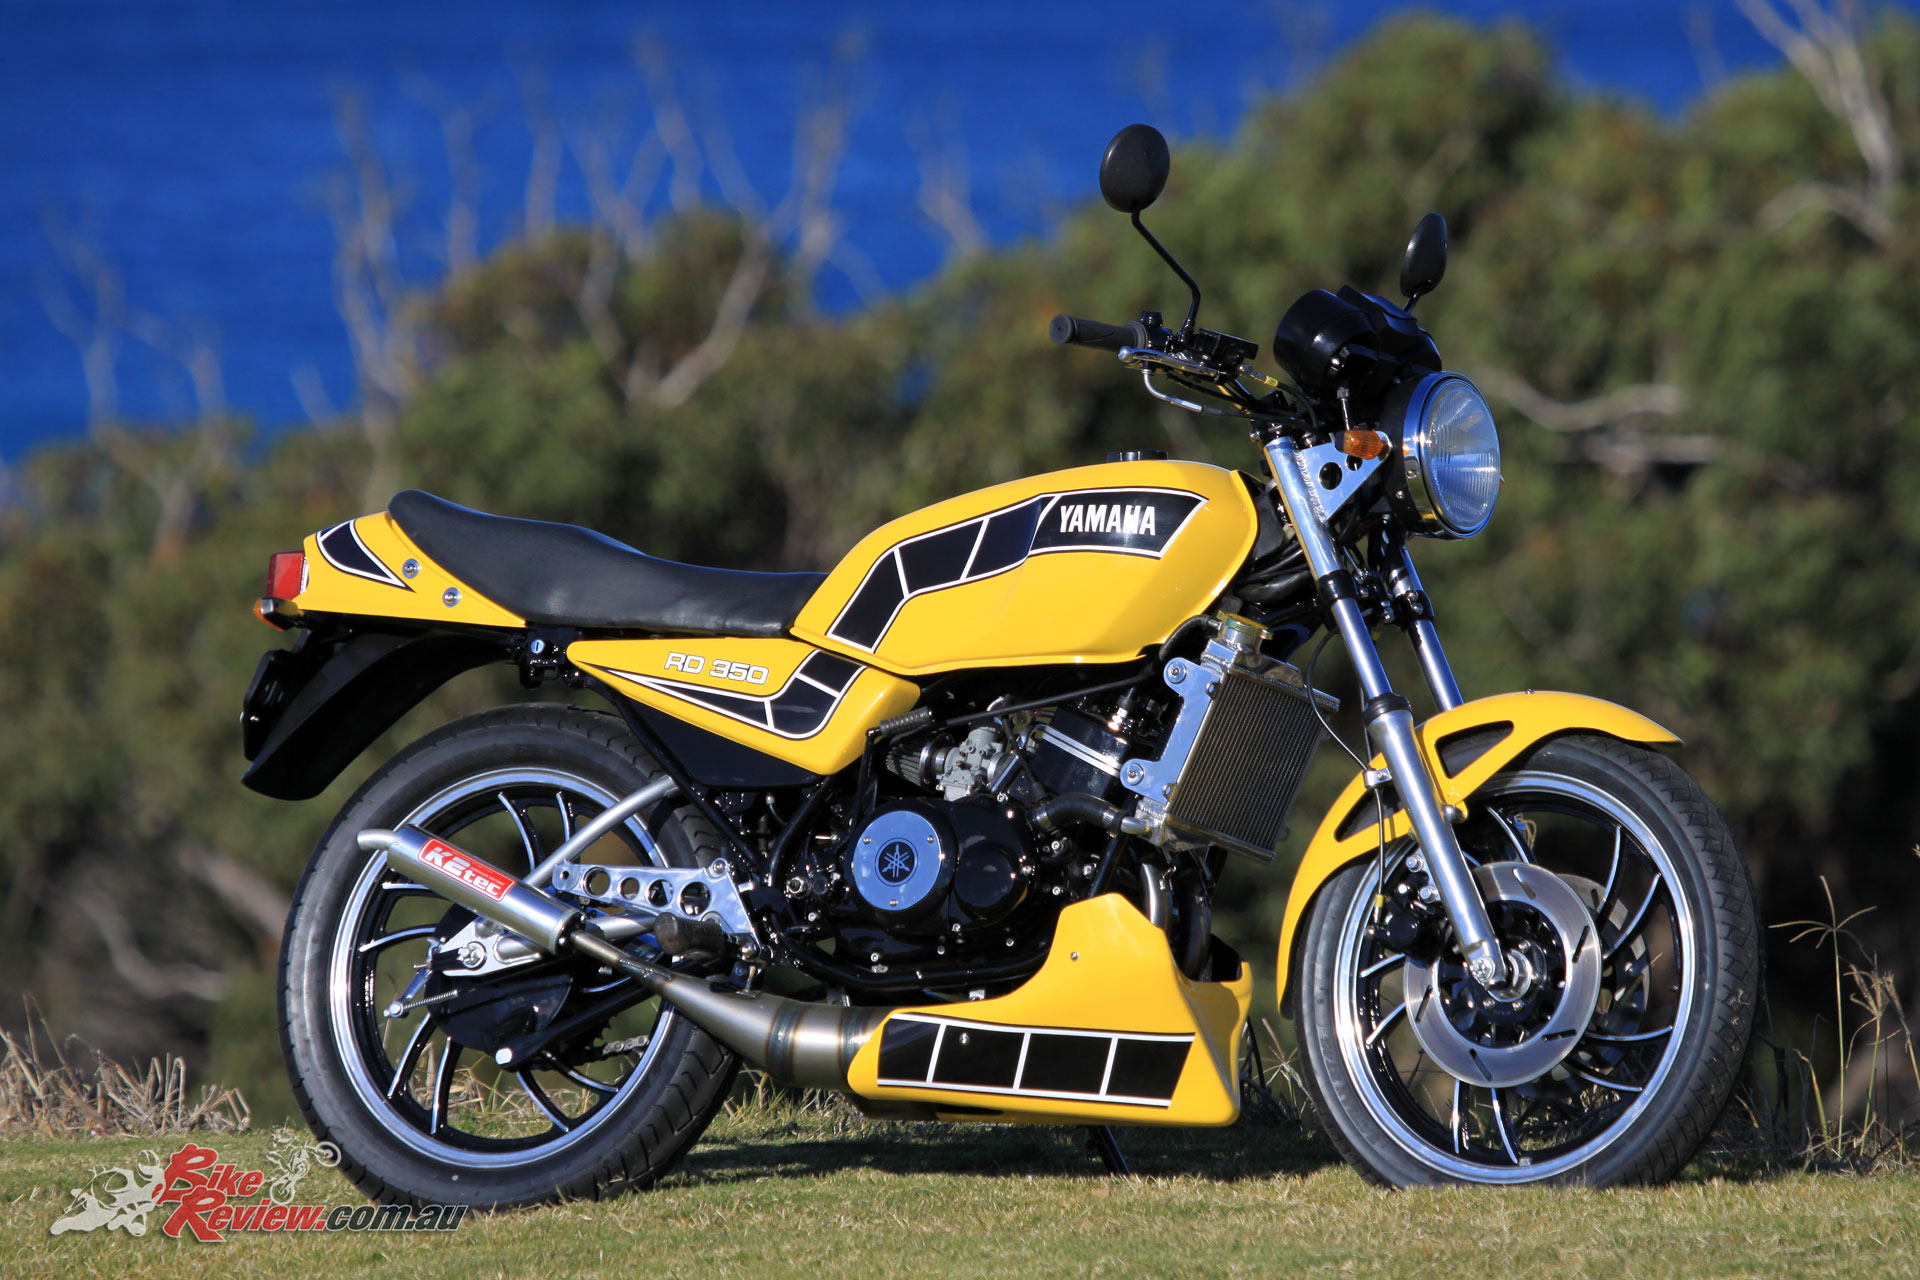 Tuning Tips: Pommie's Yamaha RD350LC - Bike Review